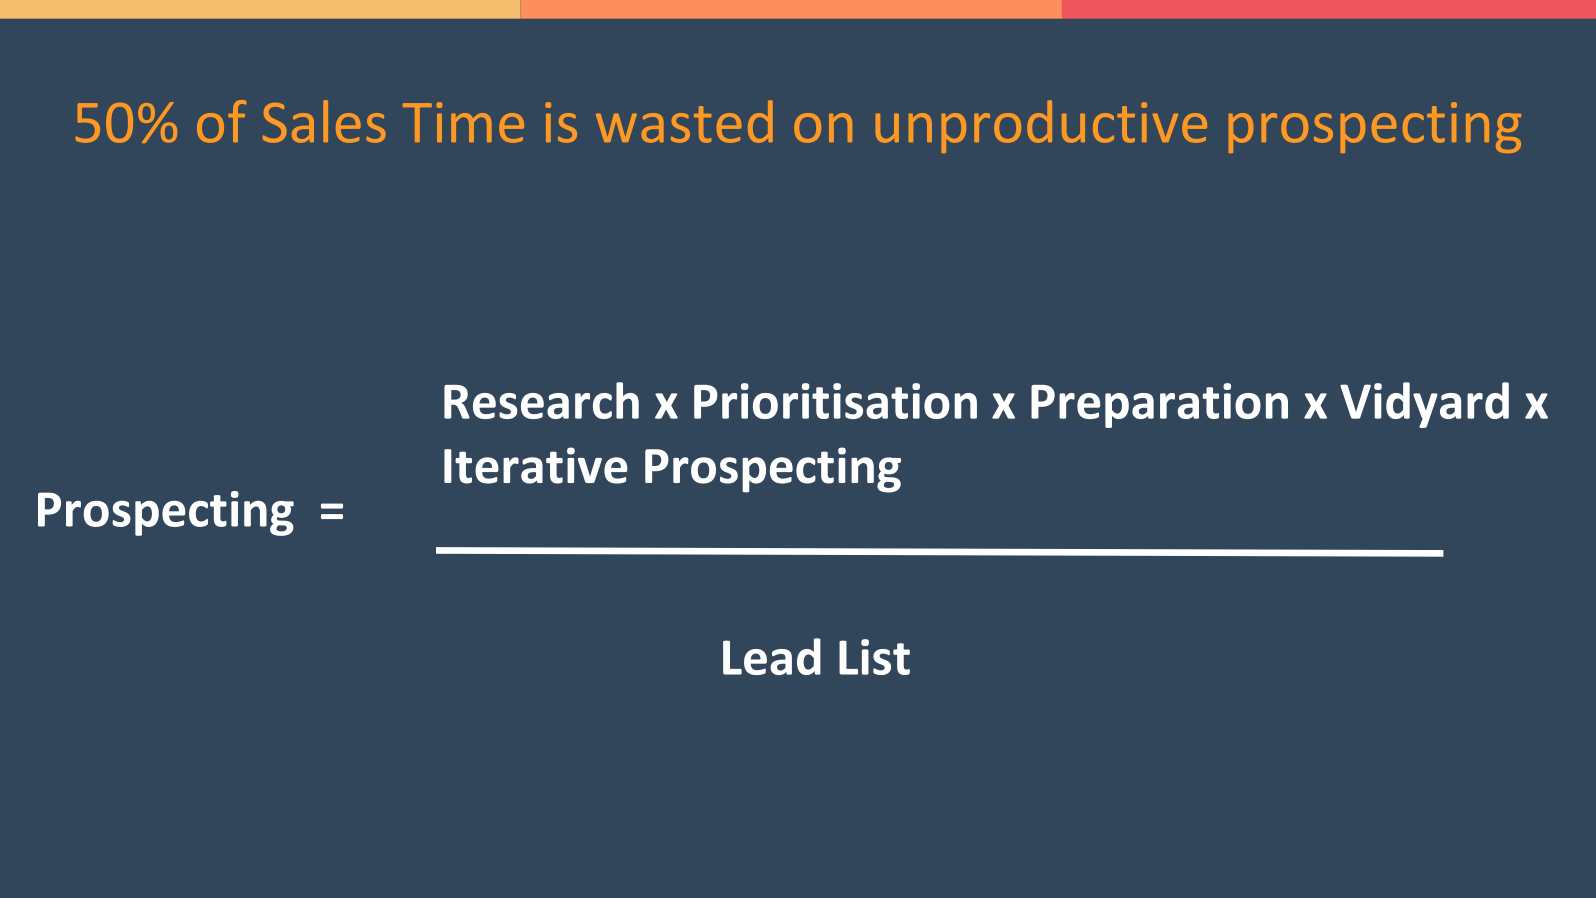 50% of sales time is wasted on unproductive prospecting